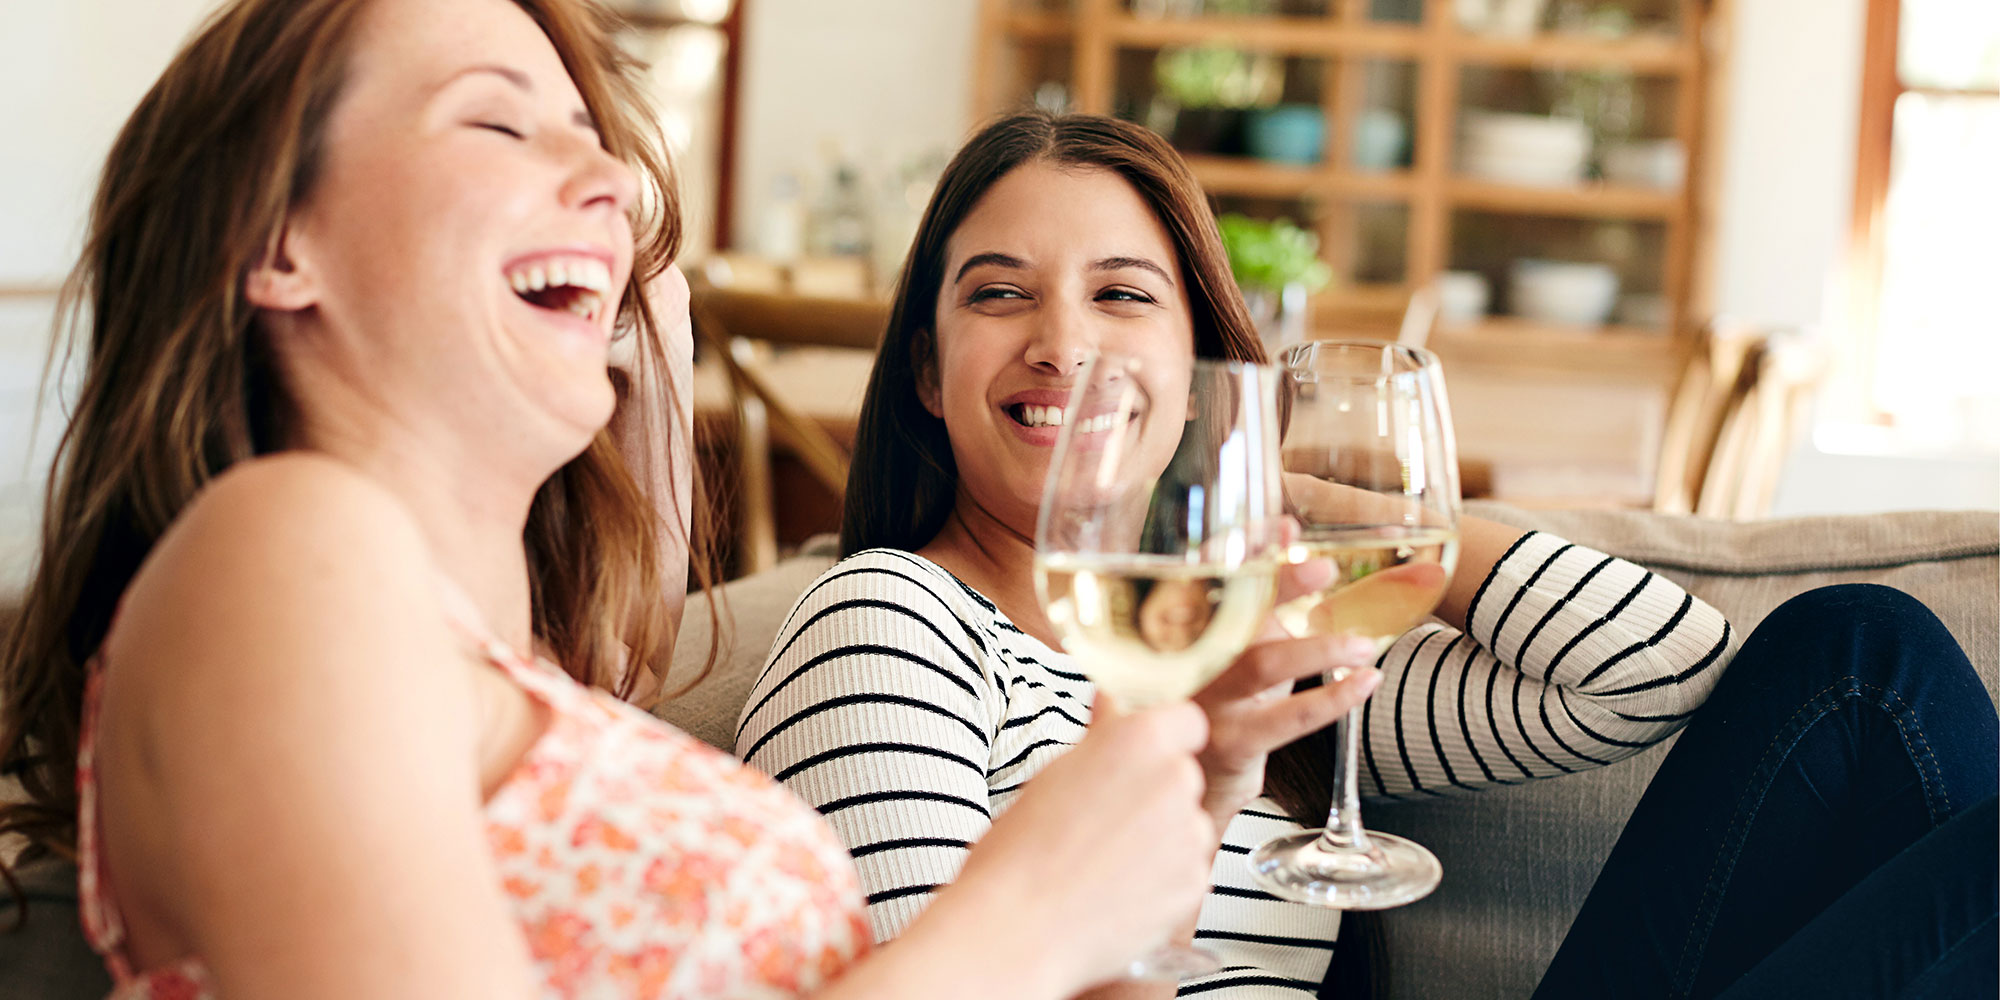 Two people laughing and holding glasses of white wine